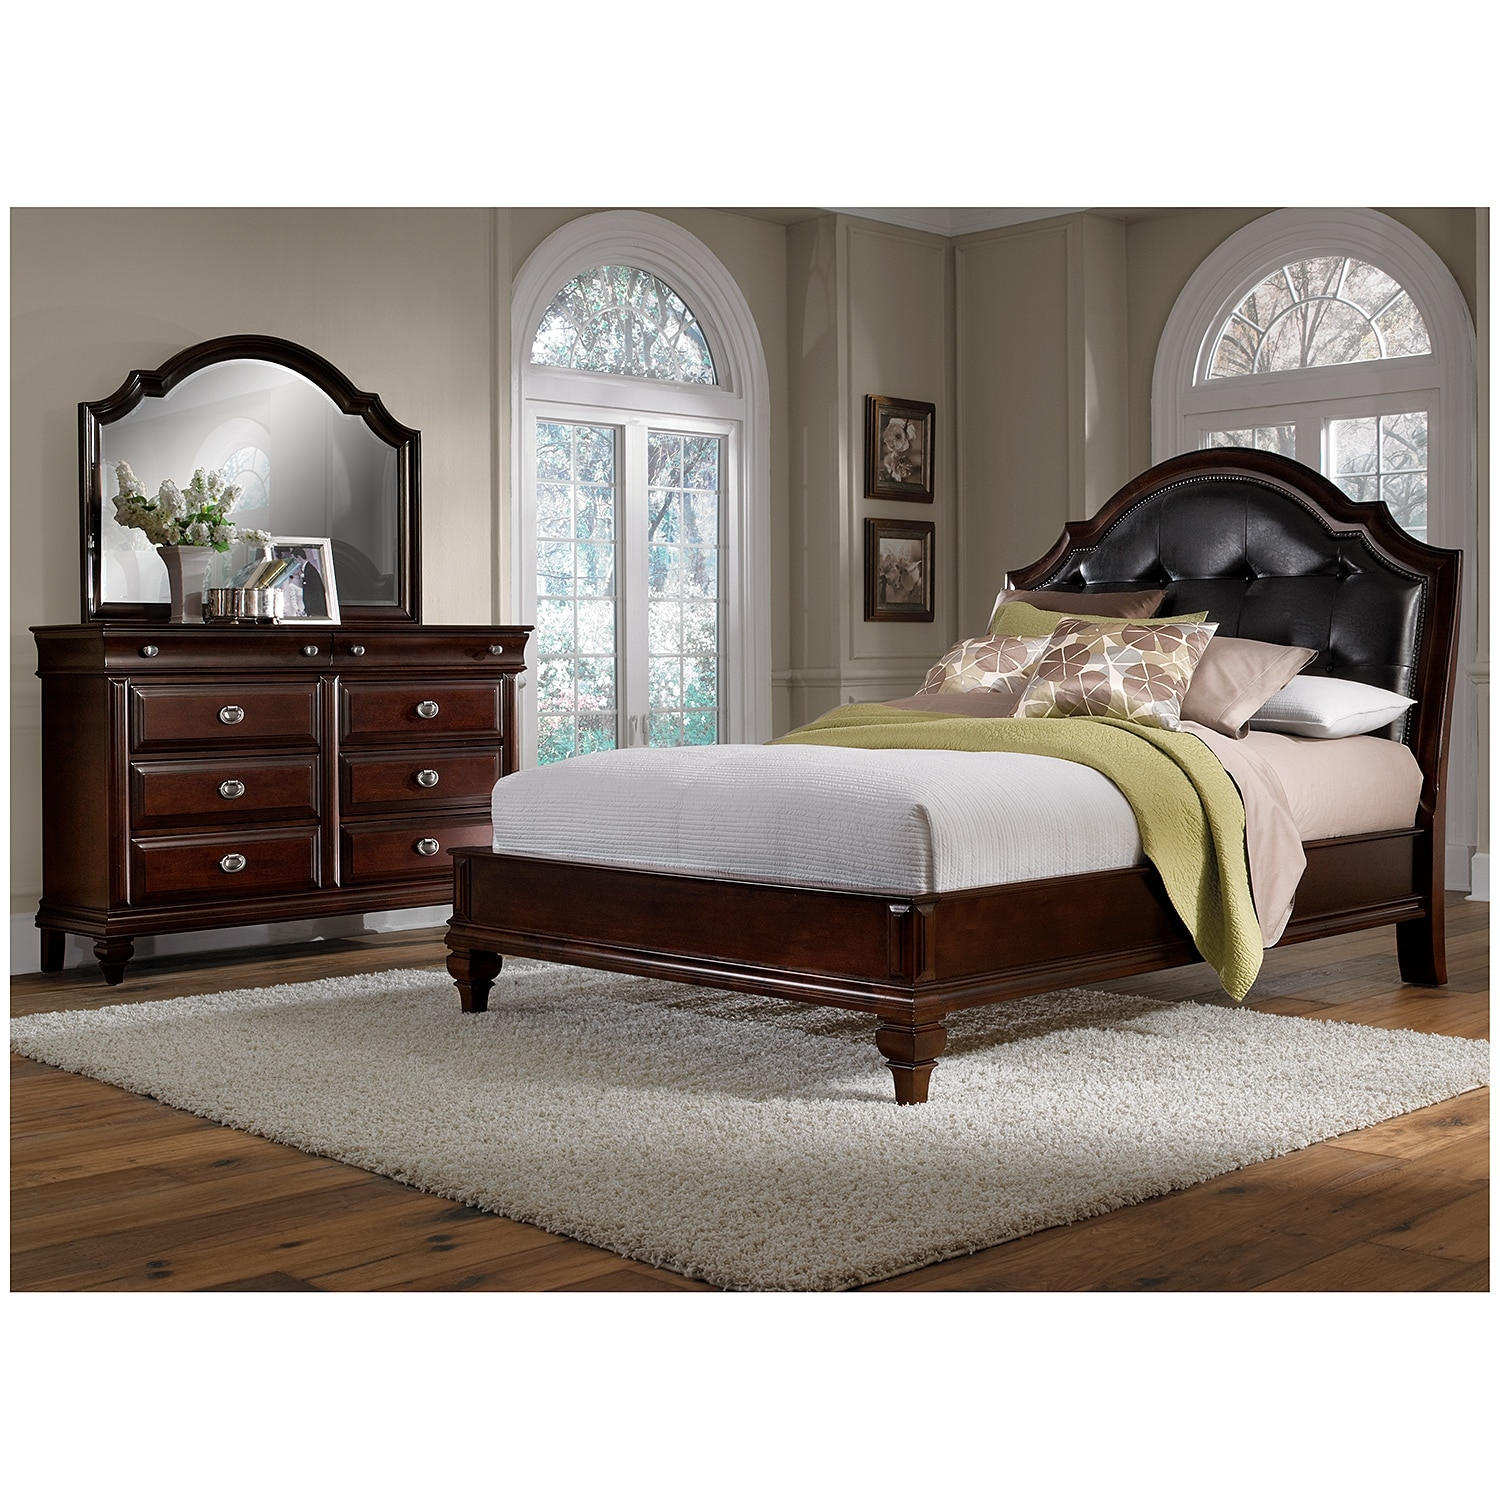 Manhattan 5 piece queen bedroom set cherry american for Signature bedroom furniture